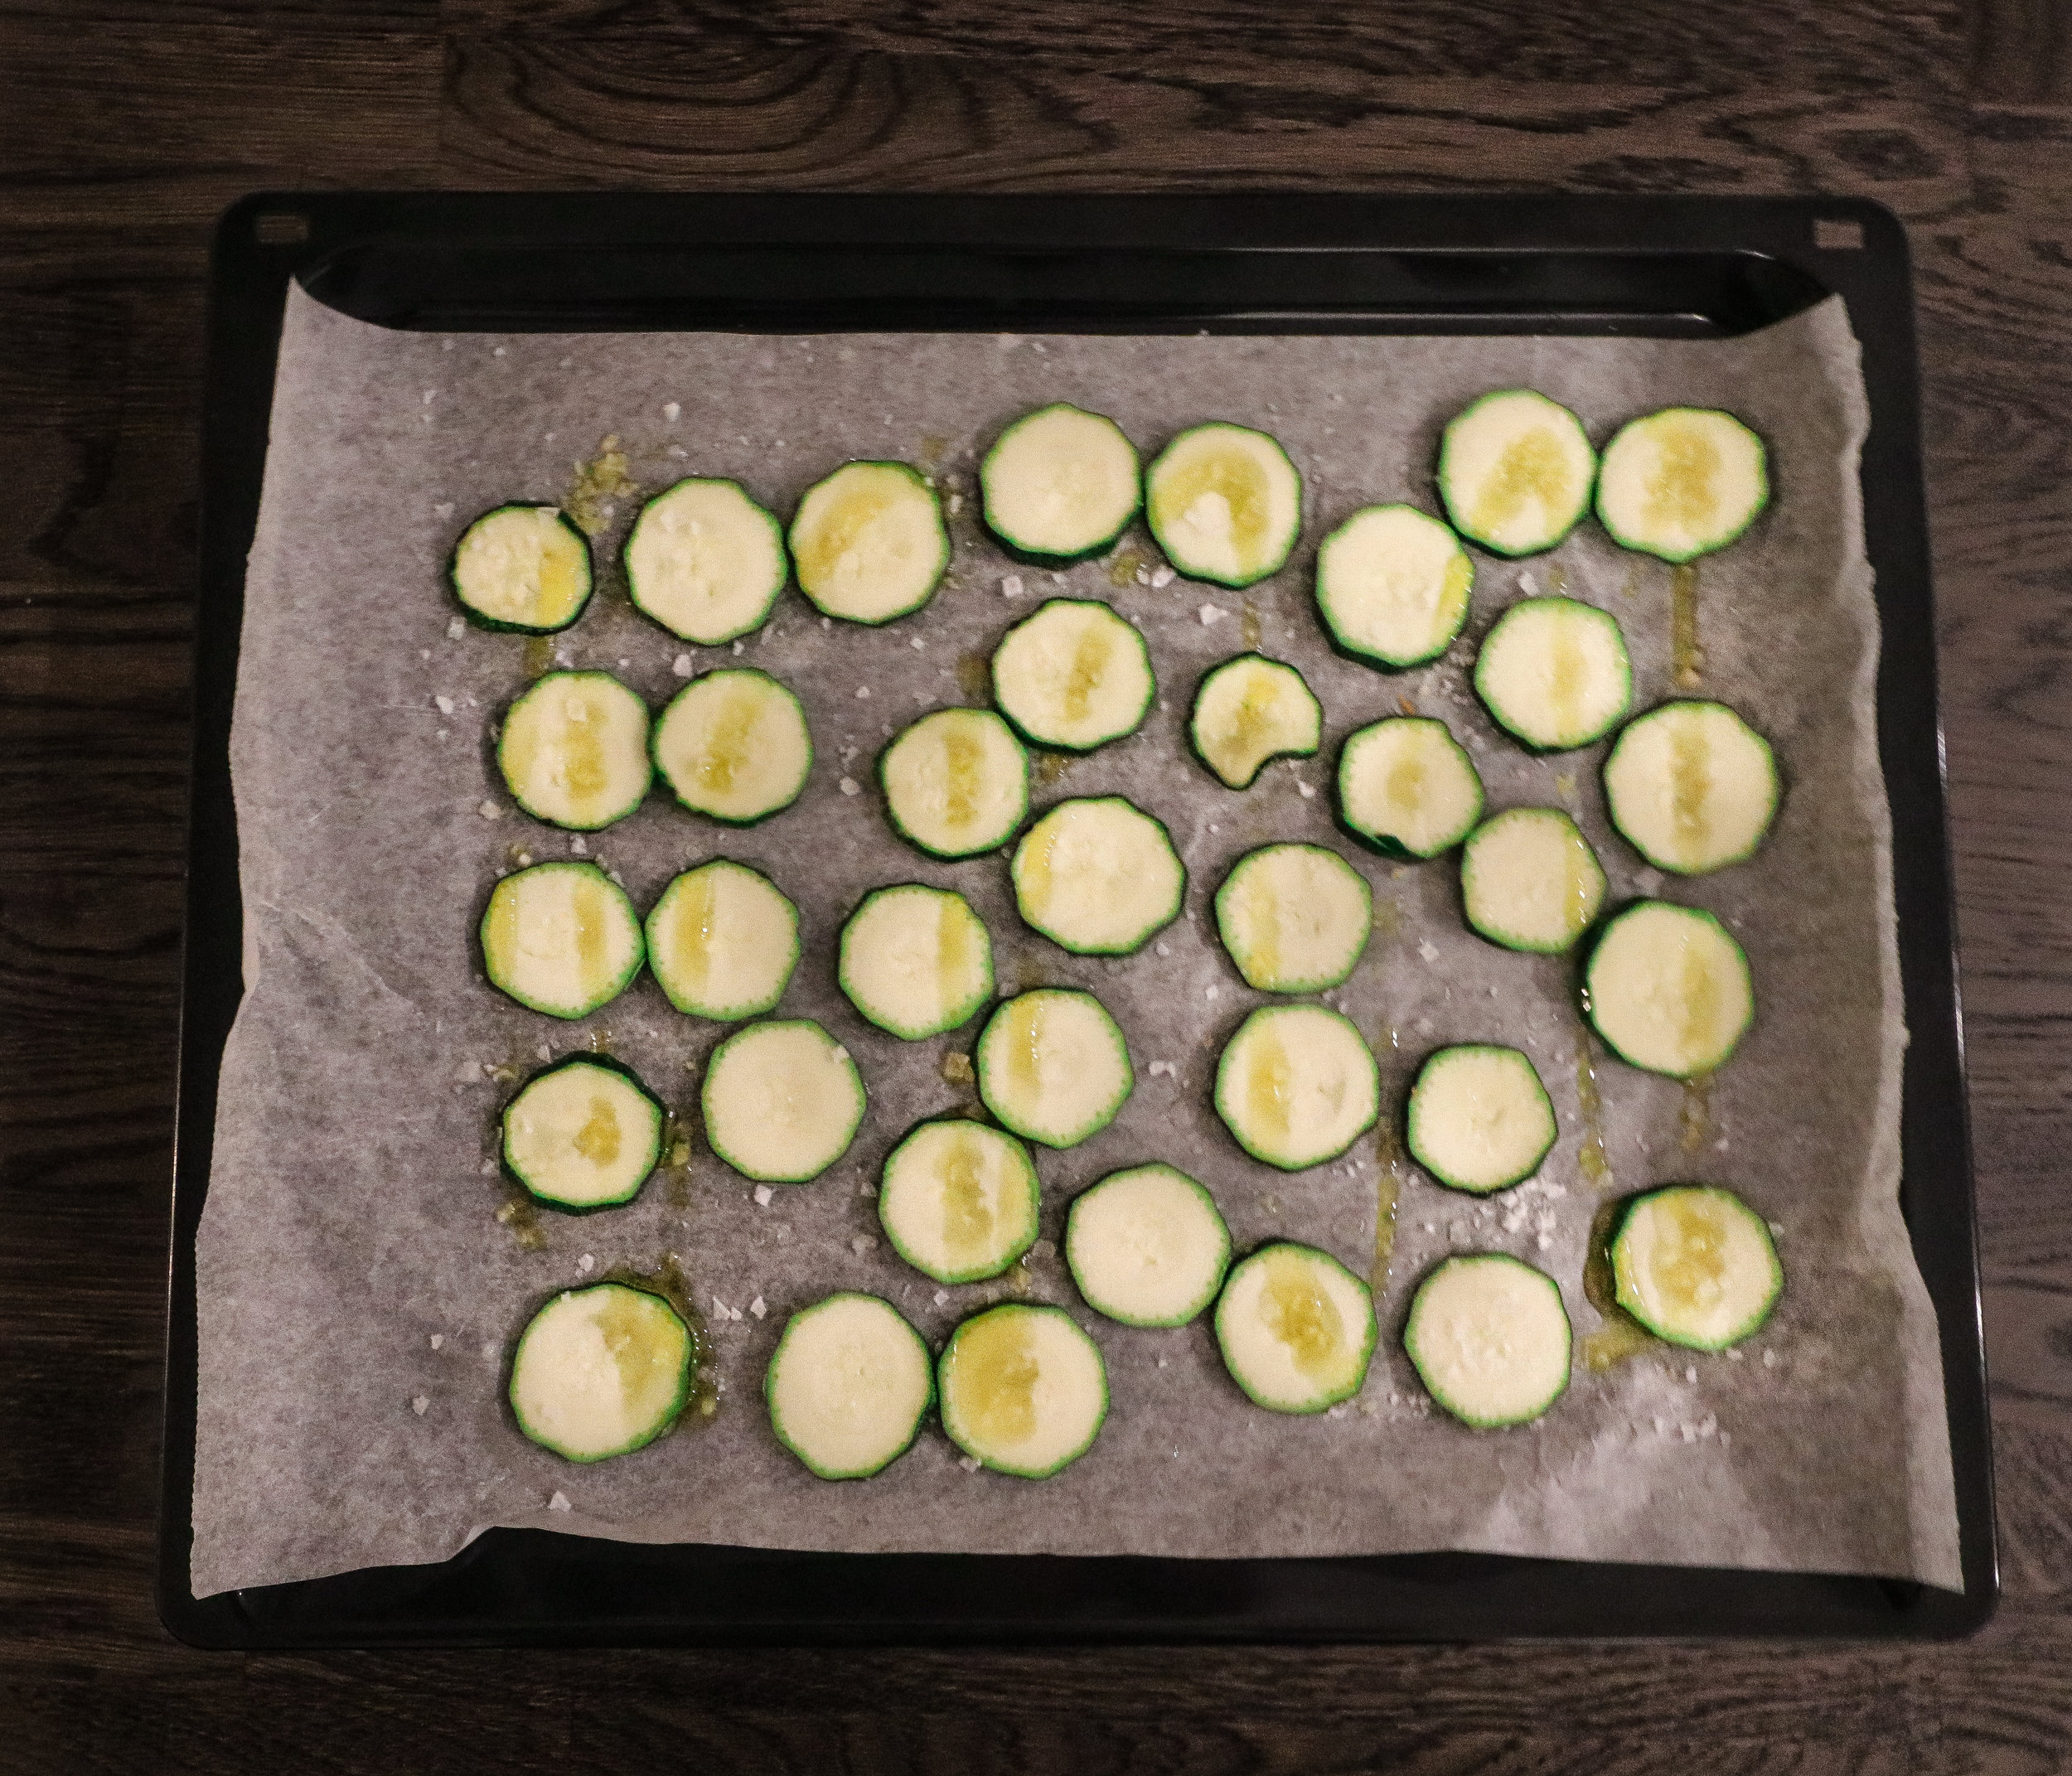 Baked zucchini chips Photo by Linda Haggh.jpg